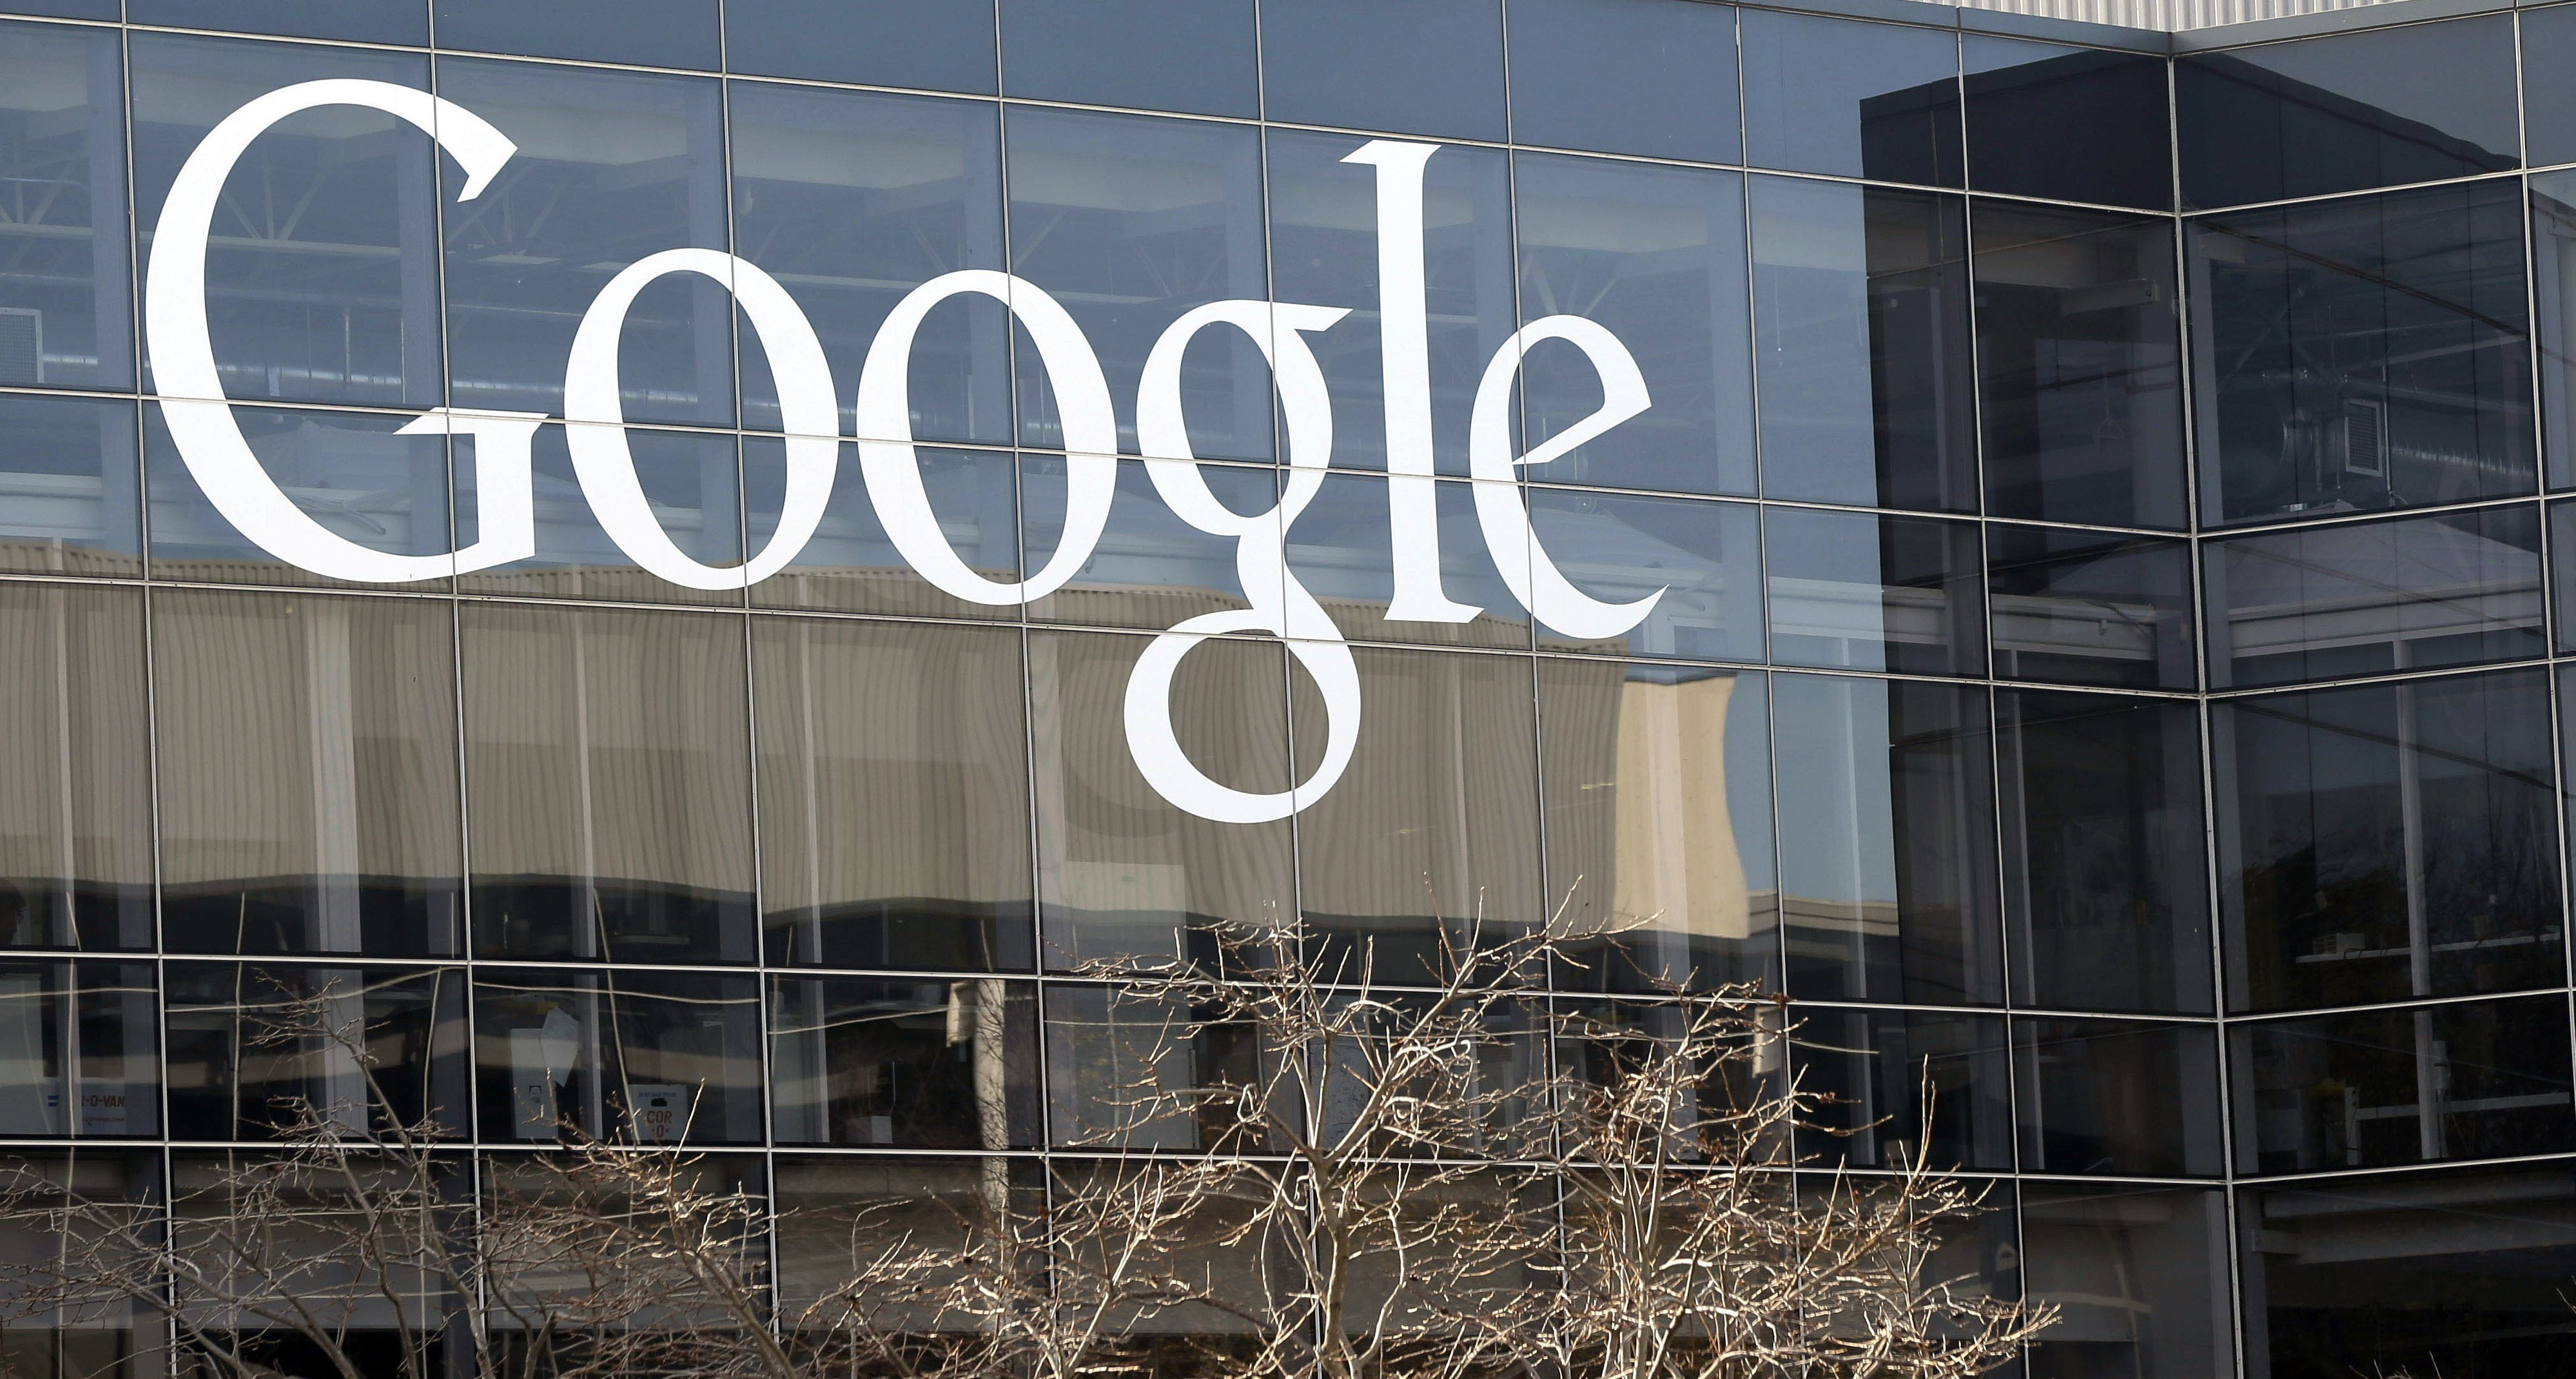 Google is being sued for its diversity data